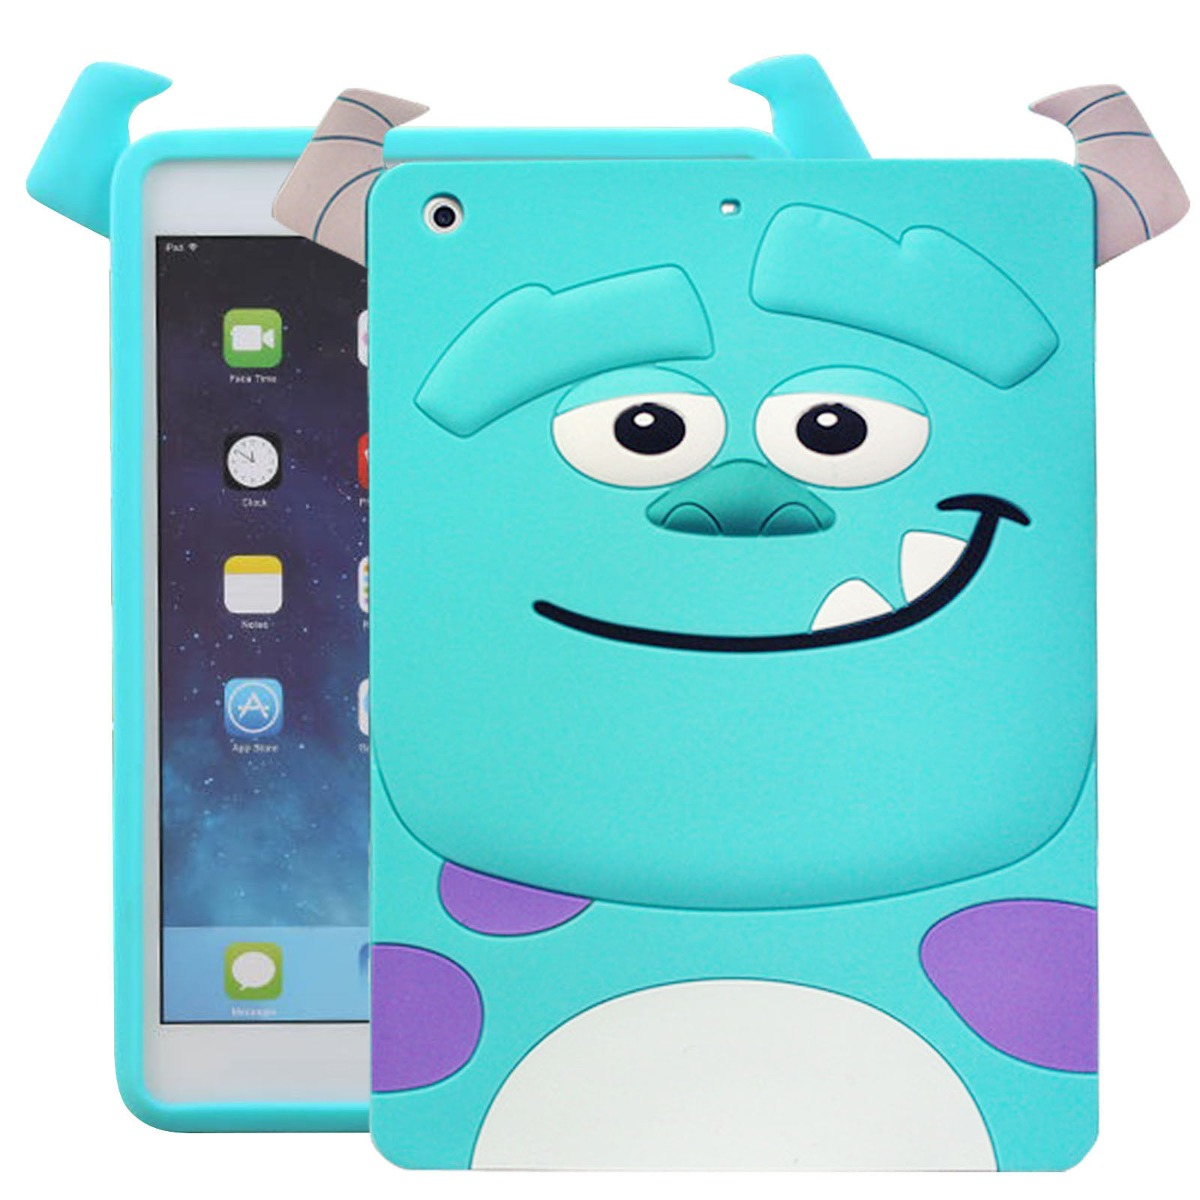 Funda silicona animada monster inc sullivan ipad mini 123 249 funda silicona animada monster inc sullivan ipad mini 123 cargando zoom altavistaventures Image collections